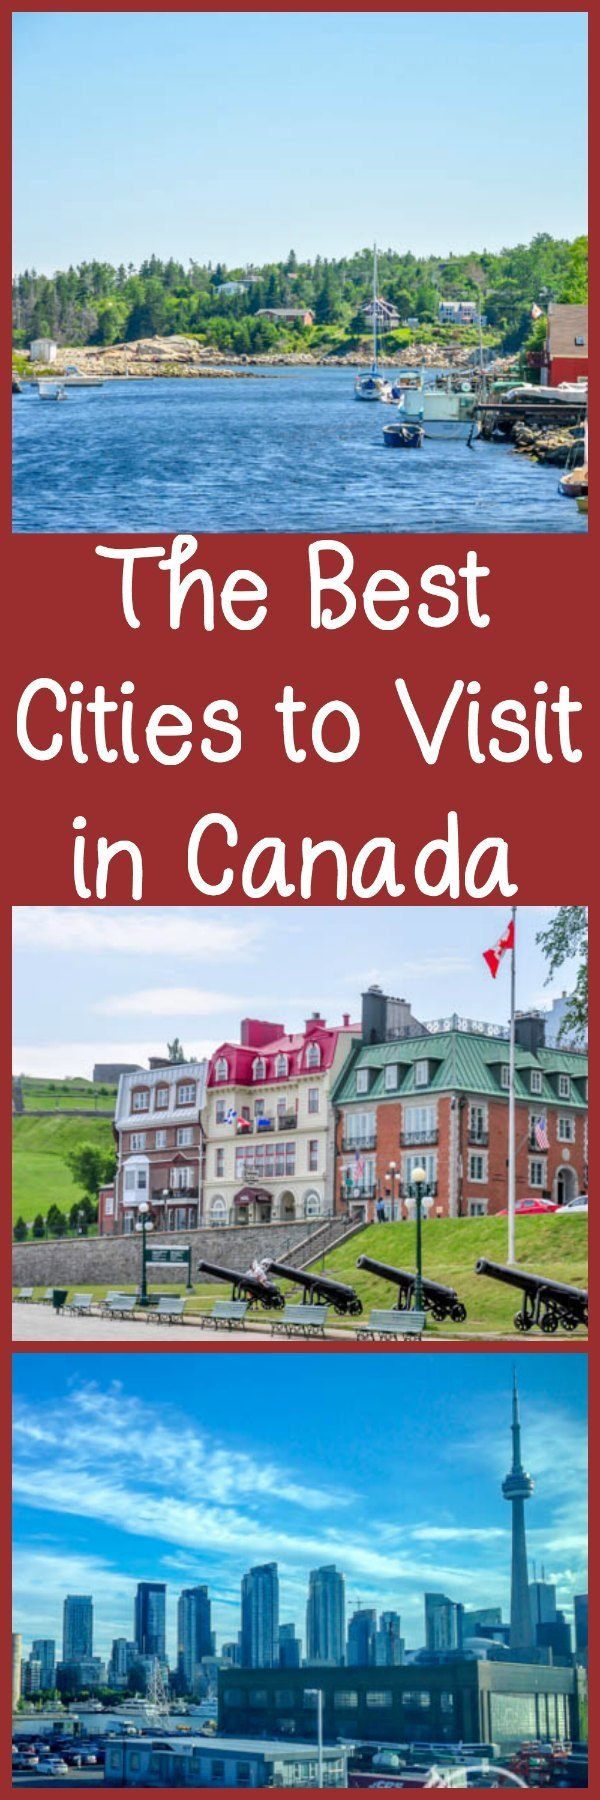 A collaborative post with some of the best places and cities to visit in Canada, including Quebec City, Vancouver, and Nova Scotia.